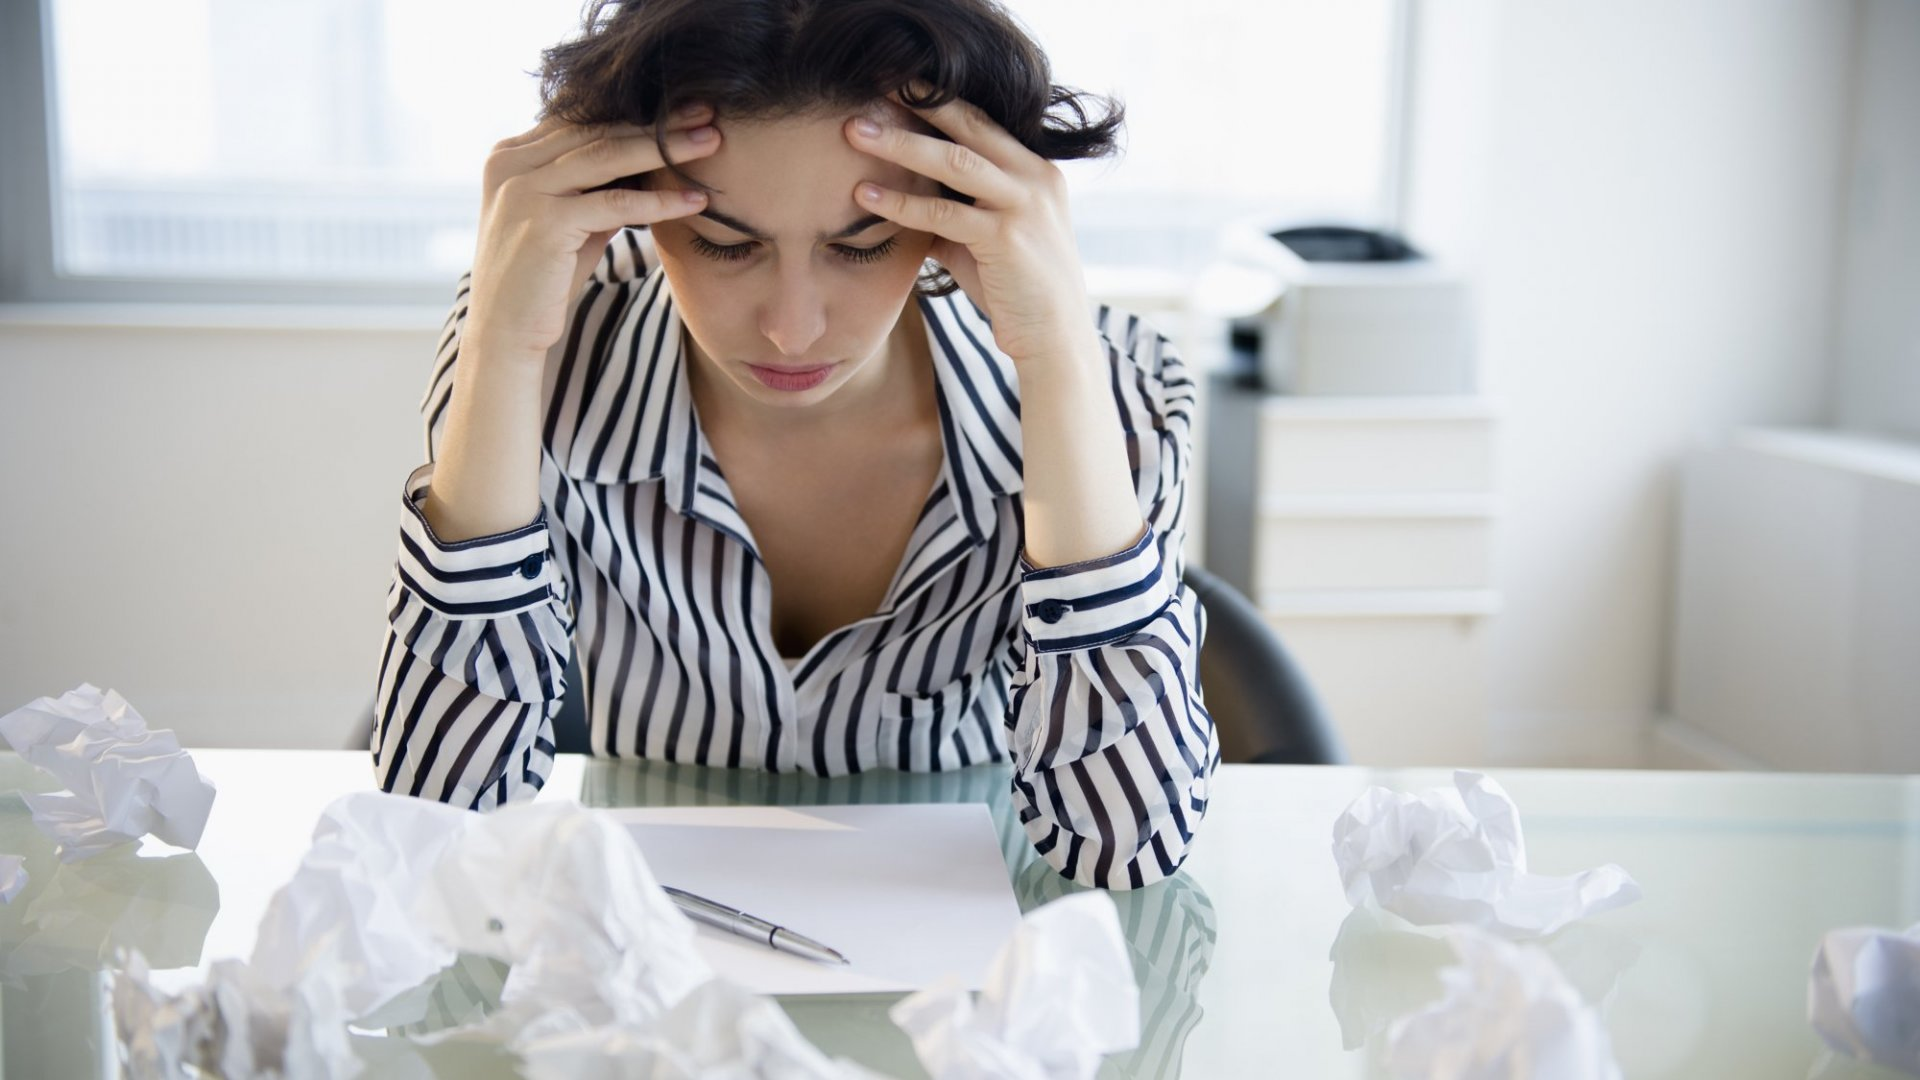 4 Ways to Get Out of a Bad Work Rut